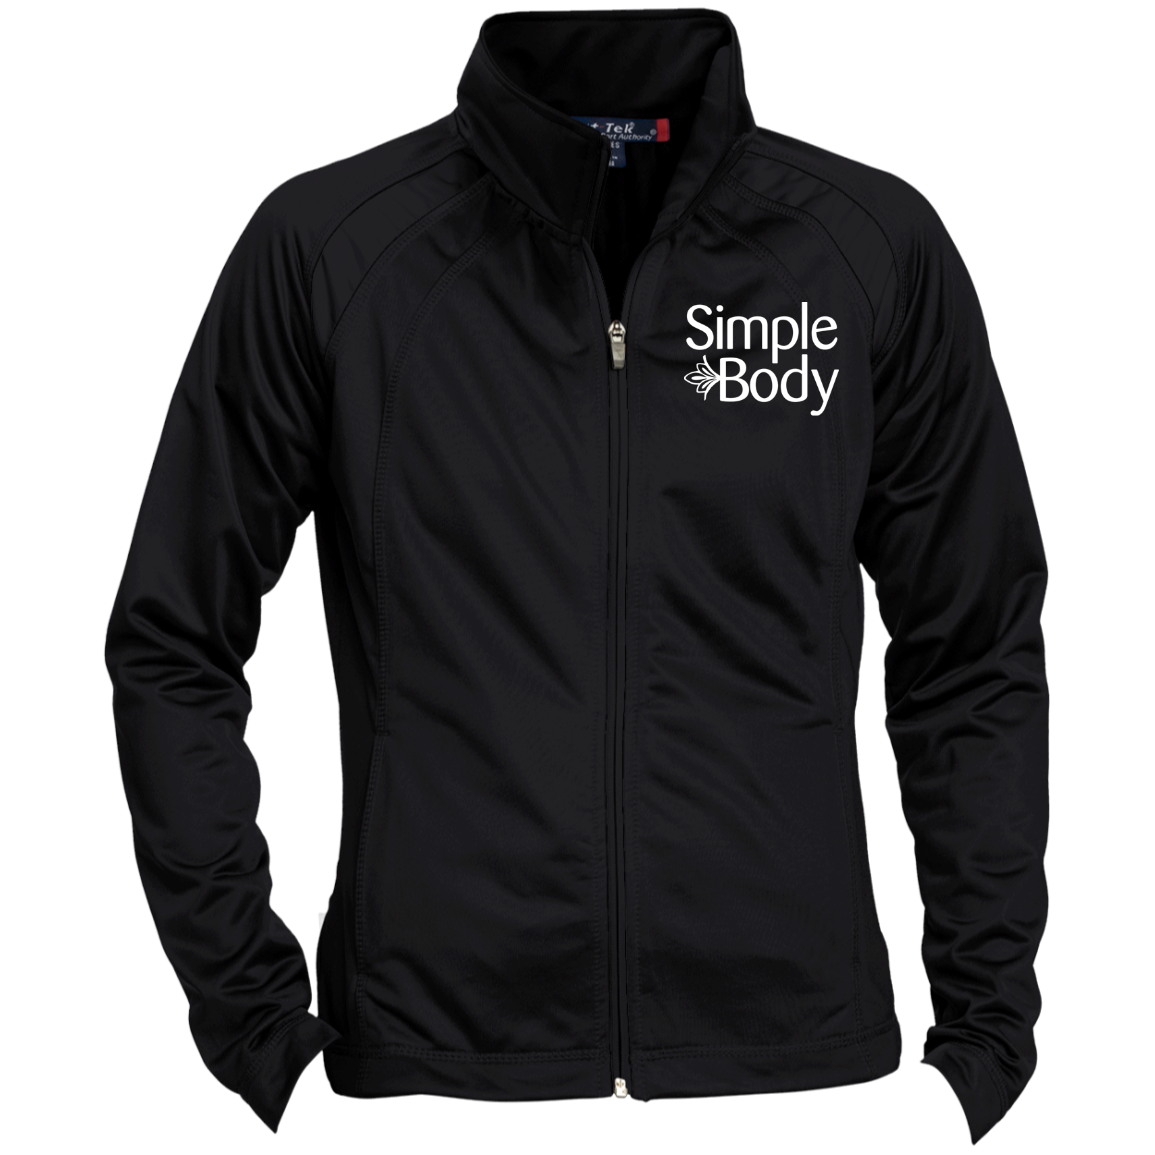 Ladies' Raglan Sleeve Warmup Jacket